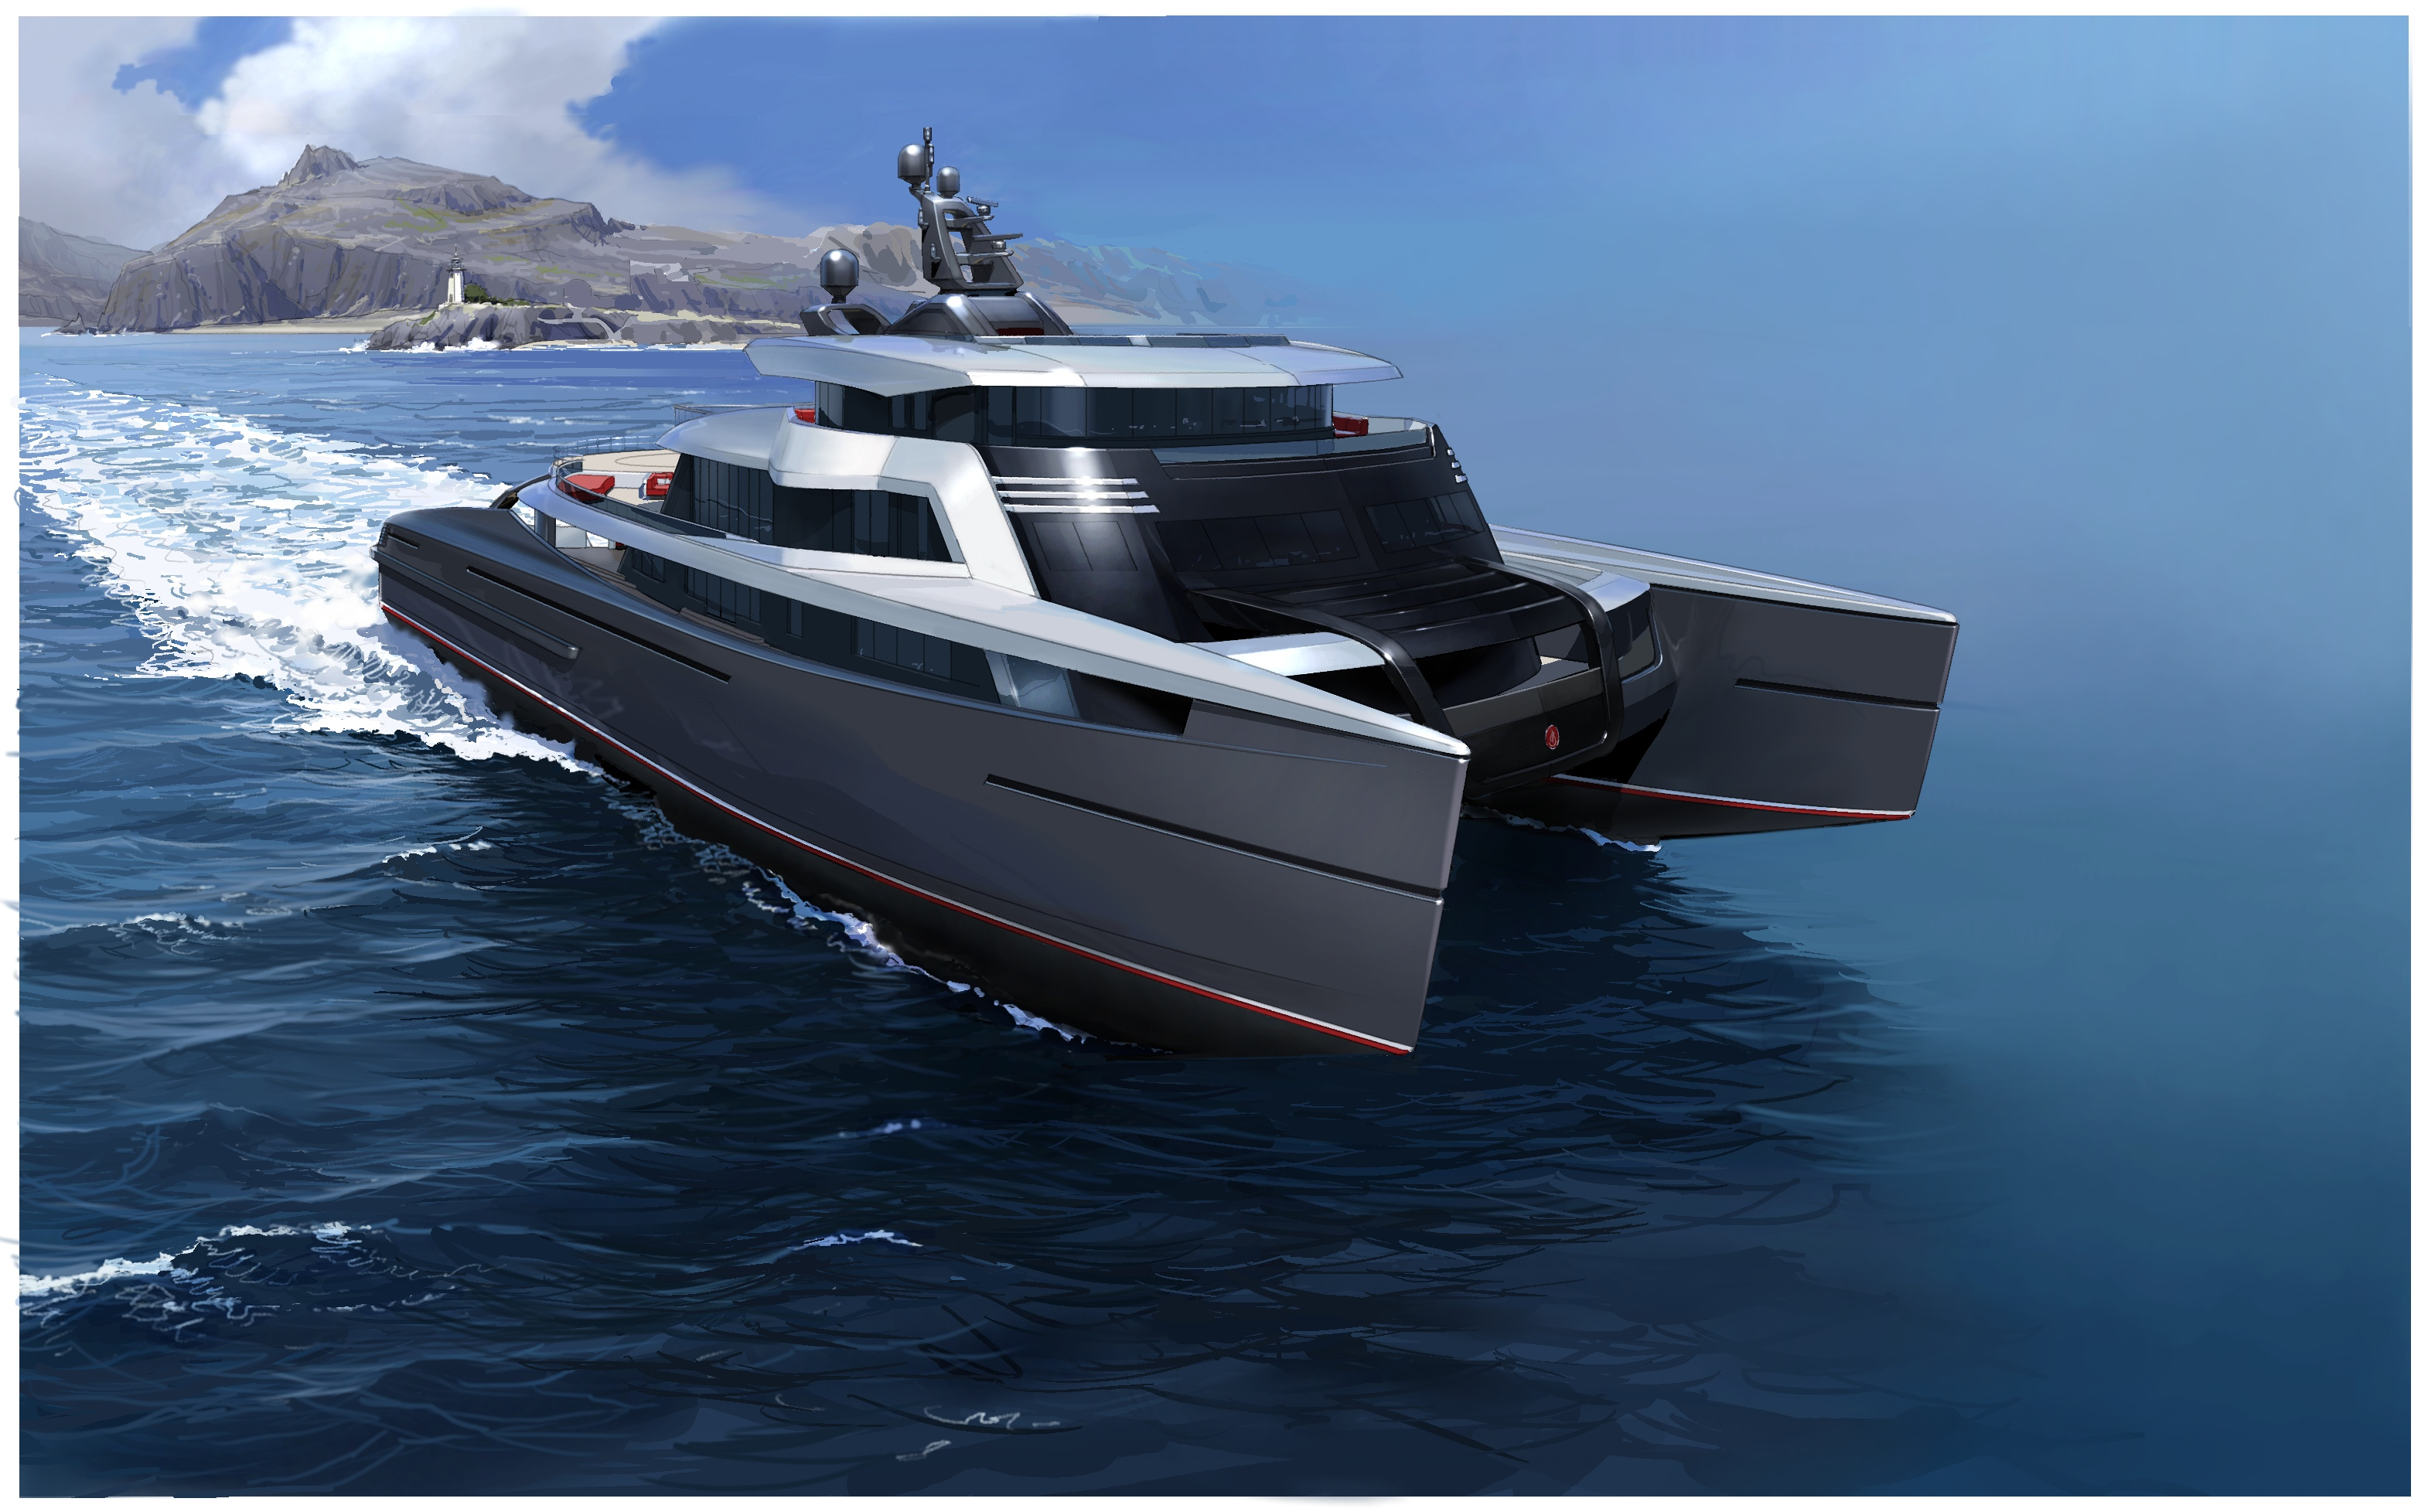 boat water toys with Abeking Rasmussen Swath Yacht Of 63 Metres on 70m New Diamond Superyacht Motor Yacht Profile as well Sealegs likewise Patriot Th610 Off Road Toy Hauler C er Trailer together with Elastigirl Mrs Incredible The Incredibles Helen Parr also Stealthspeedboat.